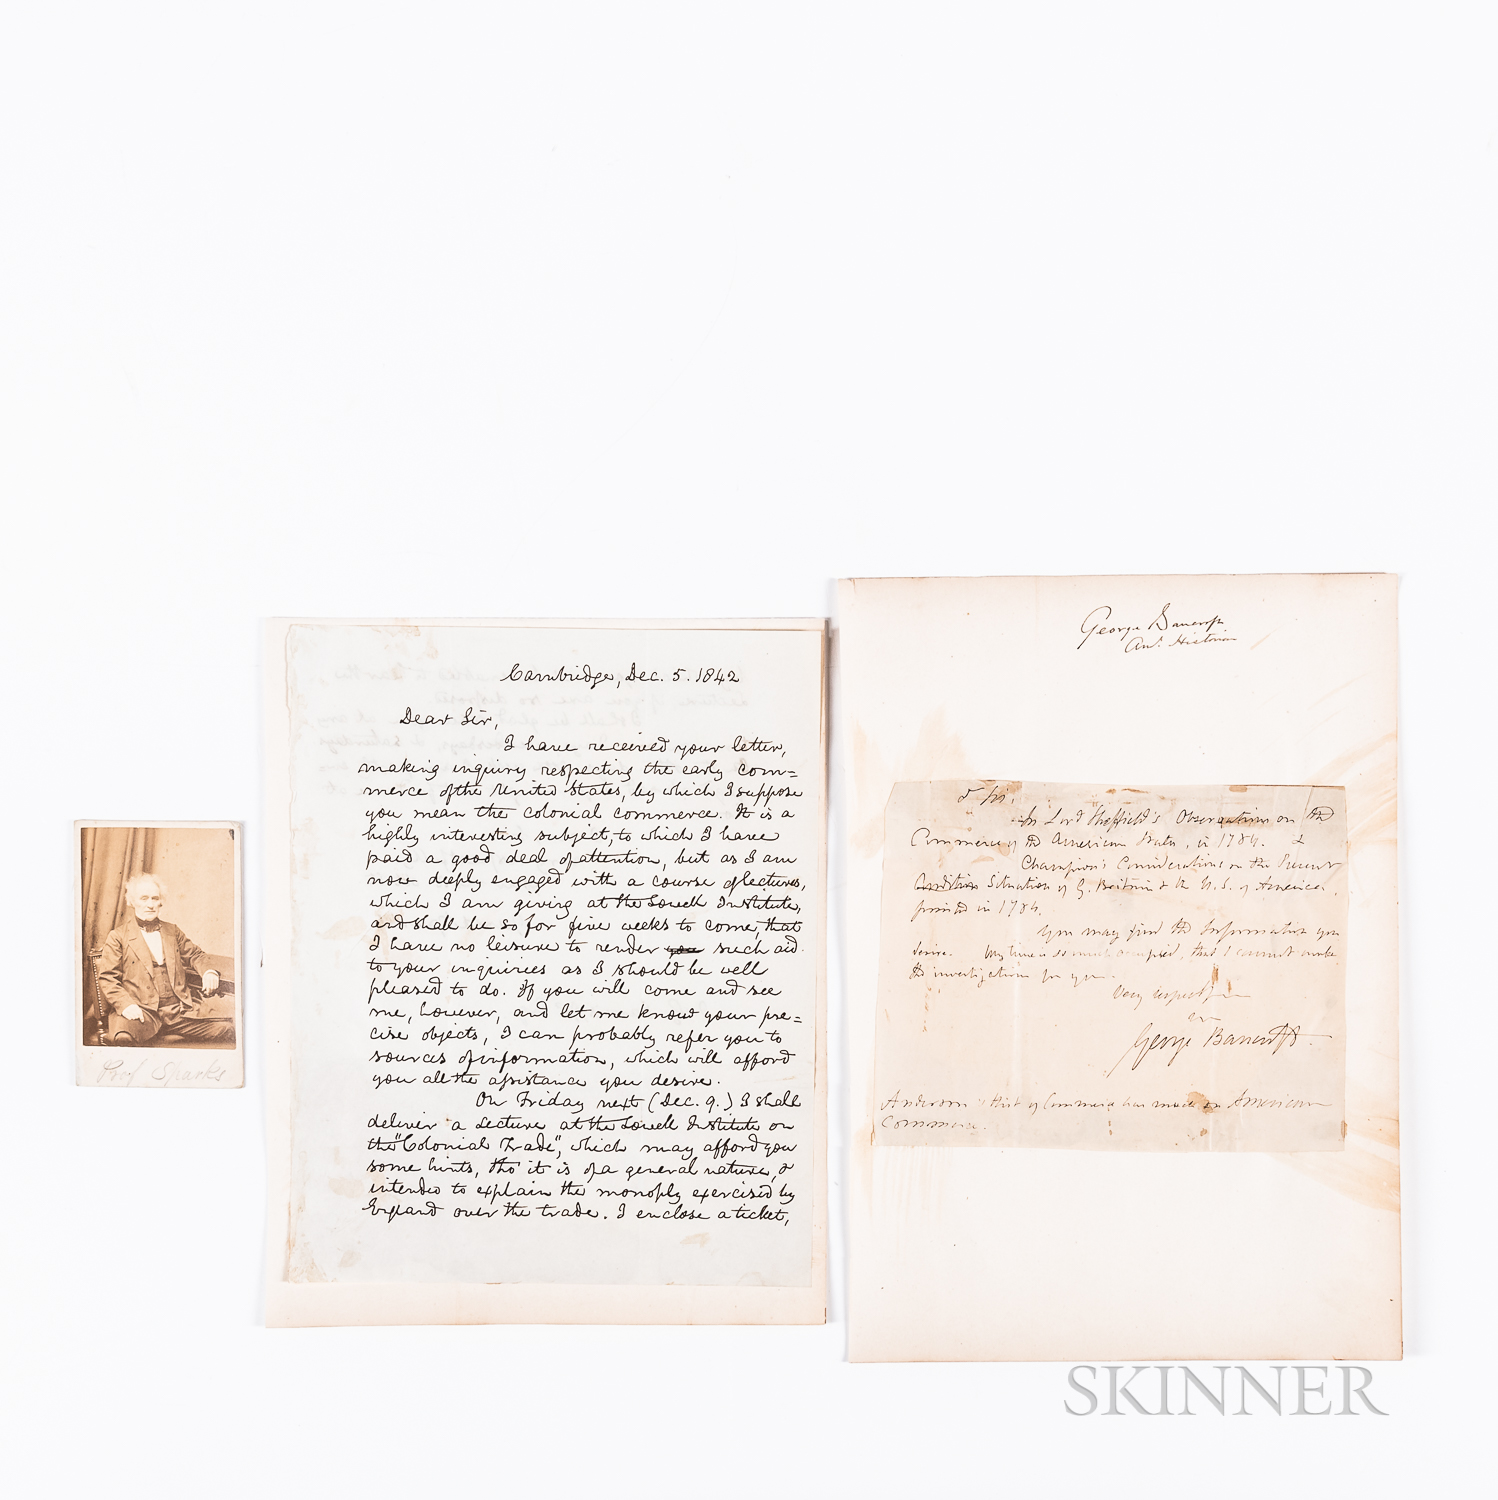 Sparks, Jared (1789-1866) and George Bancroft (1800-1891), Two Letters.